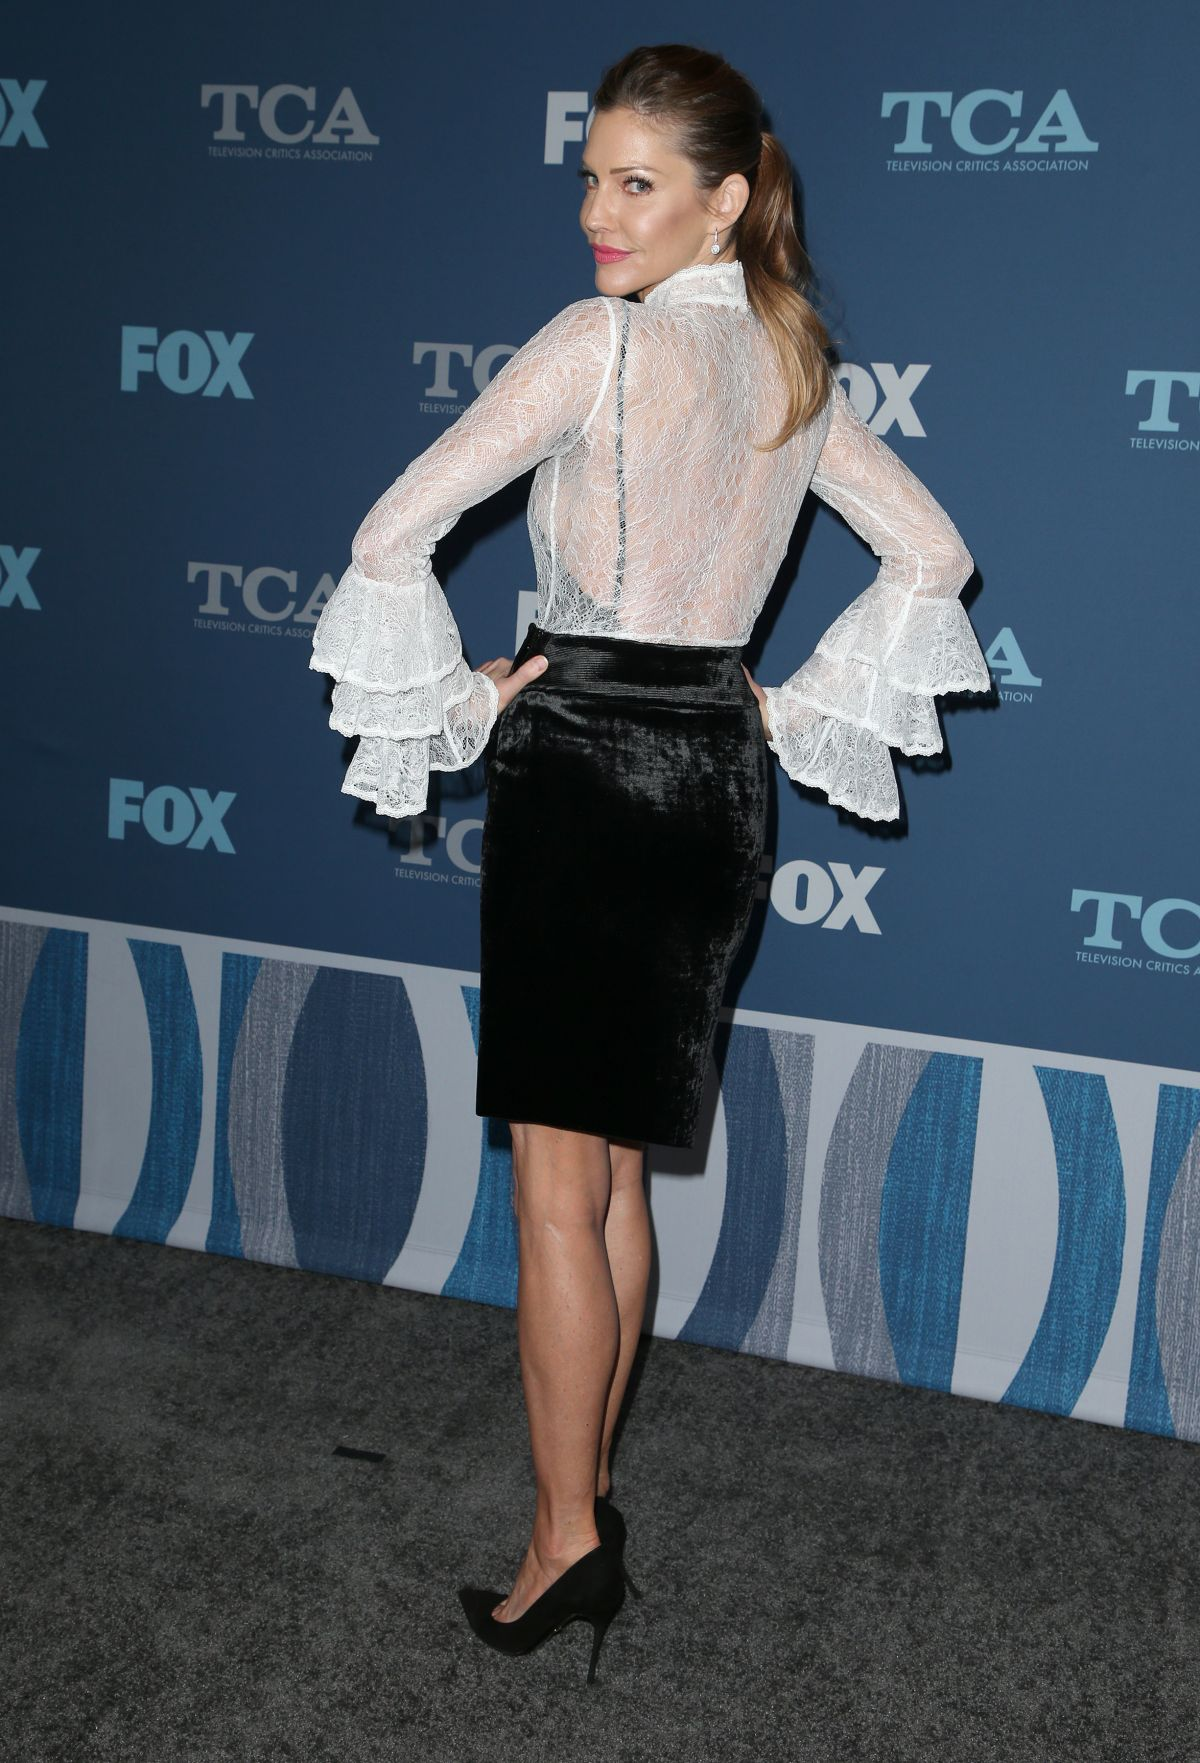 Tricia Helfer At Fox Winter All Star Party Tca Winter